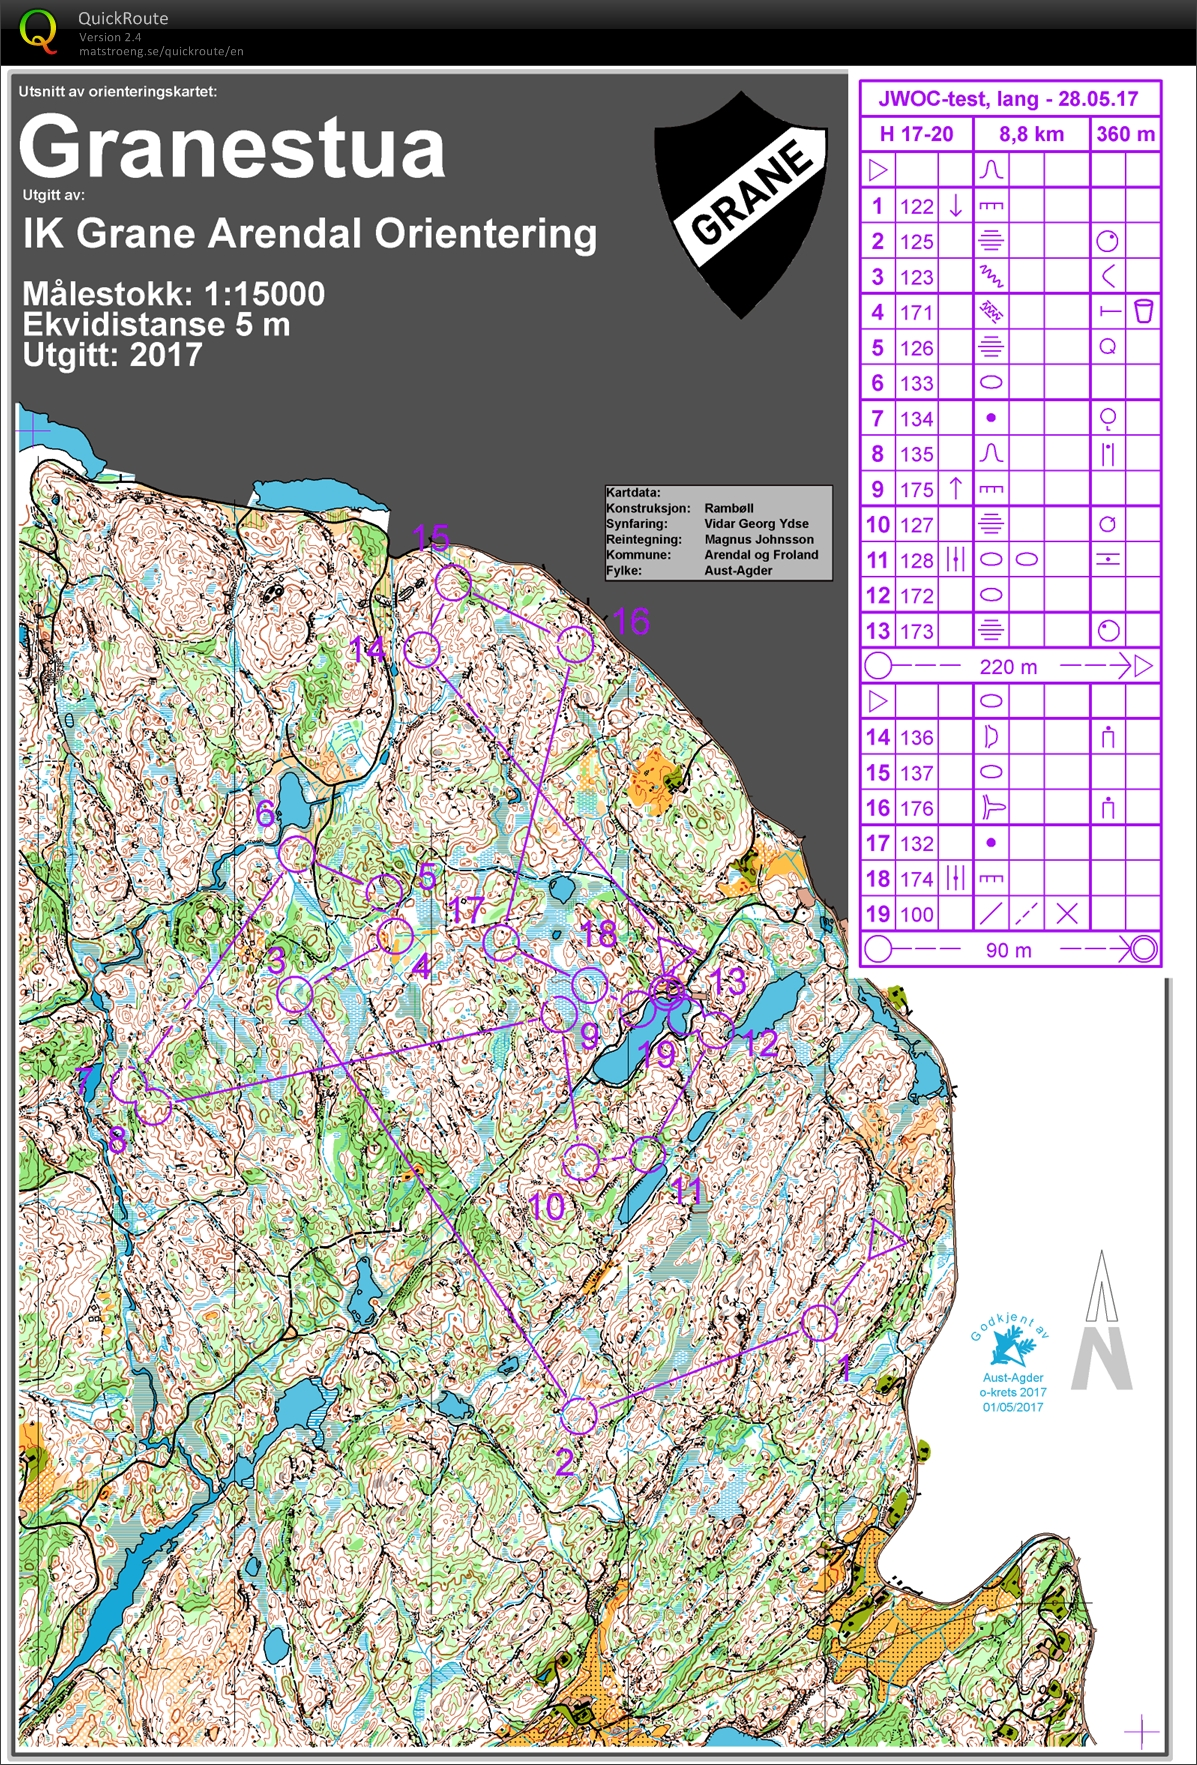 JWOC test Norway Langdistance (28.05.2017)